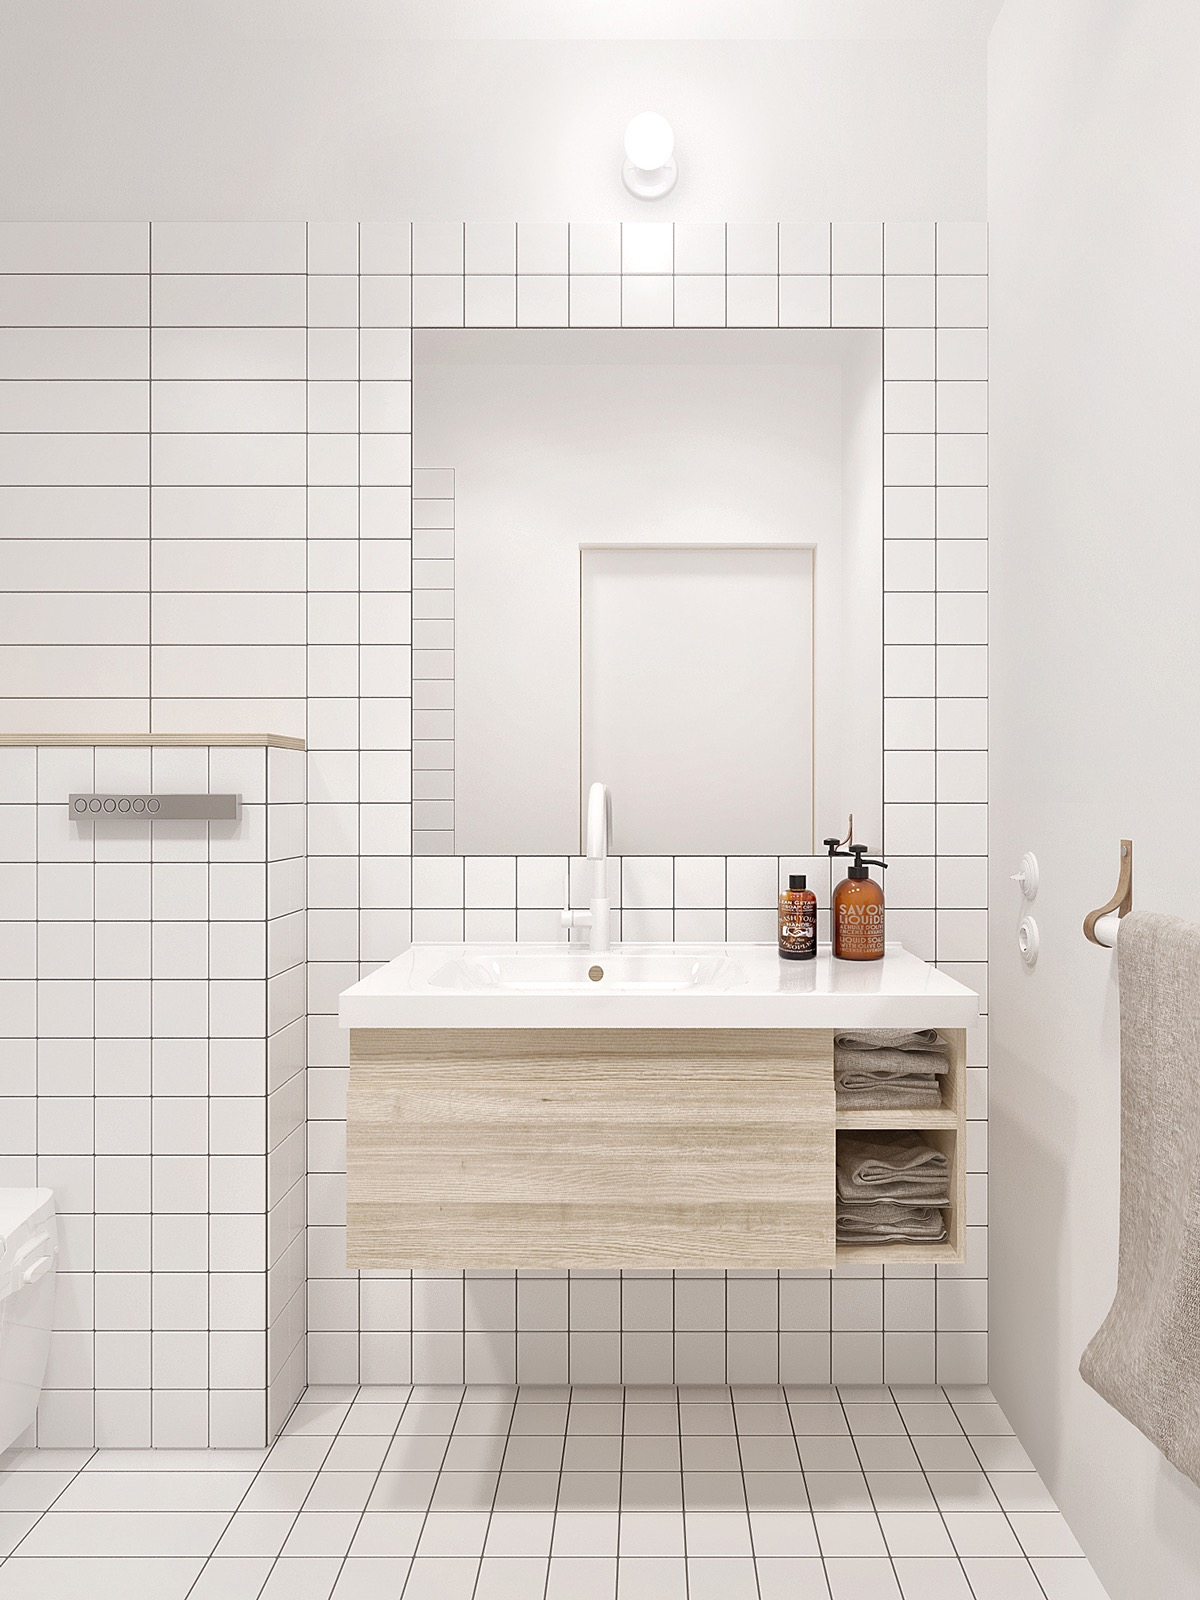 White tile bathroom interior design ideas Interior design ideas bathroom tiles